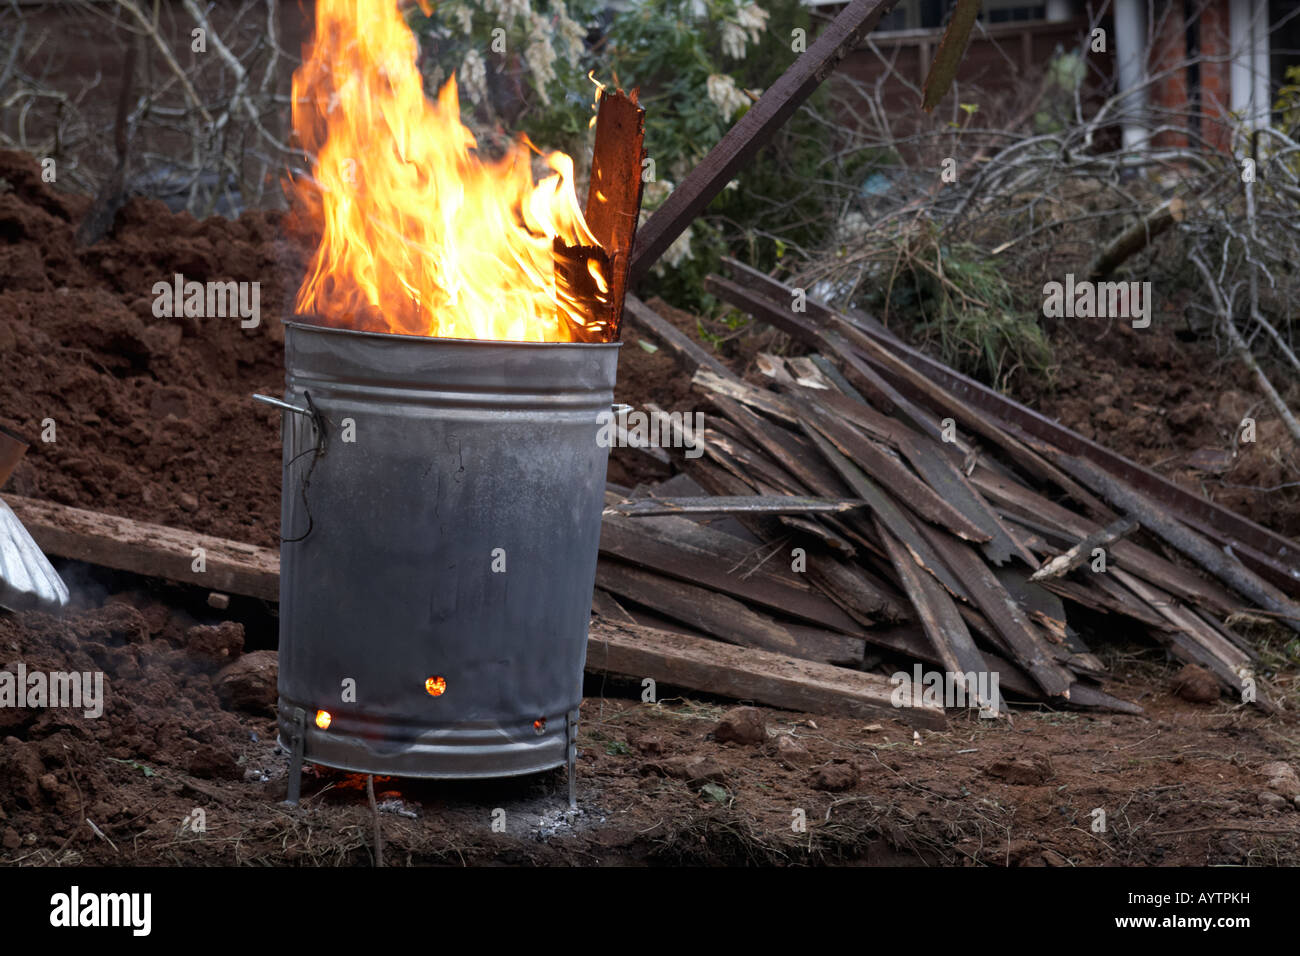 Garden Incinerator Burning Household And Garden Wooden Waste And Stock Photo Alamy